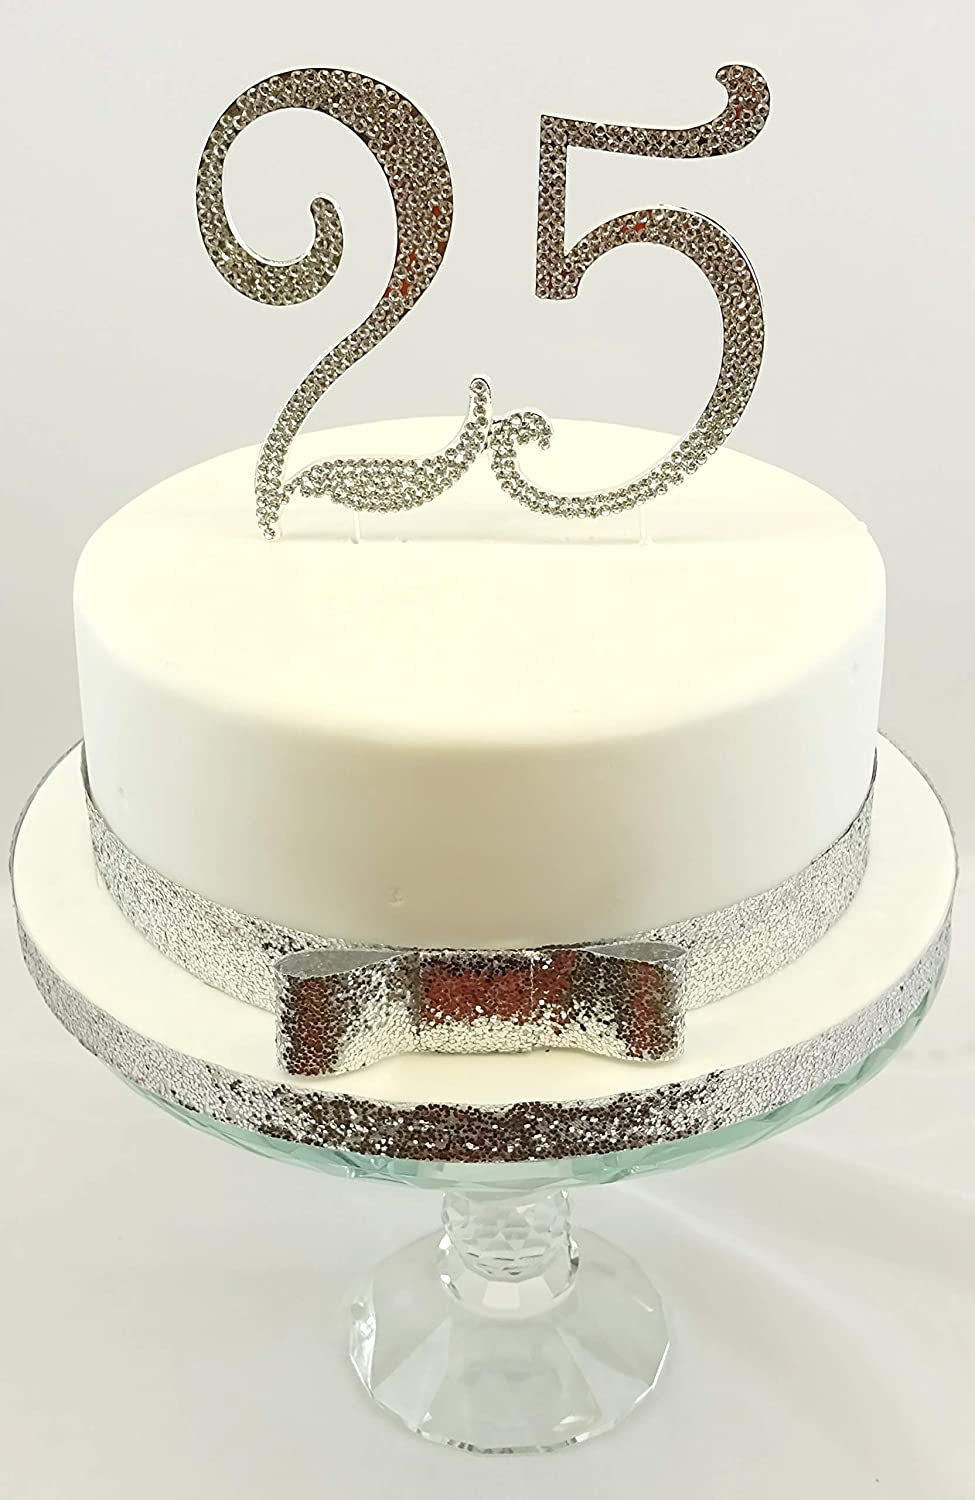 25th Birthday Or Silver Wedding Anniversary Cake Topper Extra Large Number 12cm Silver With Sparkling Rhinestones With Ribbon Set Amazon Co Uk Kitchen Home